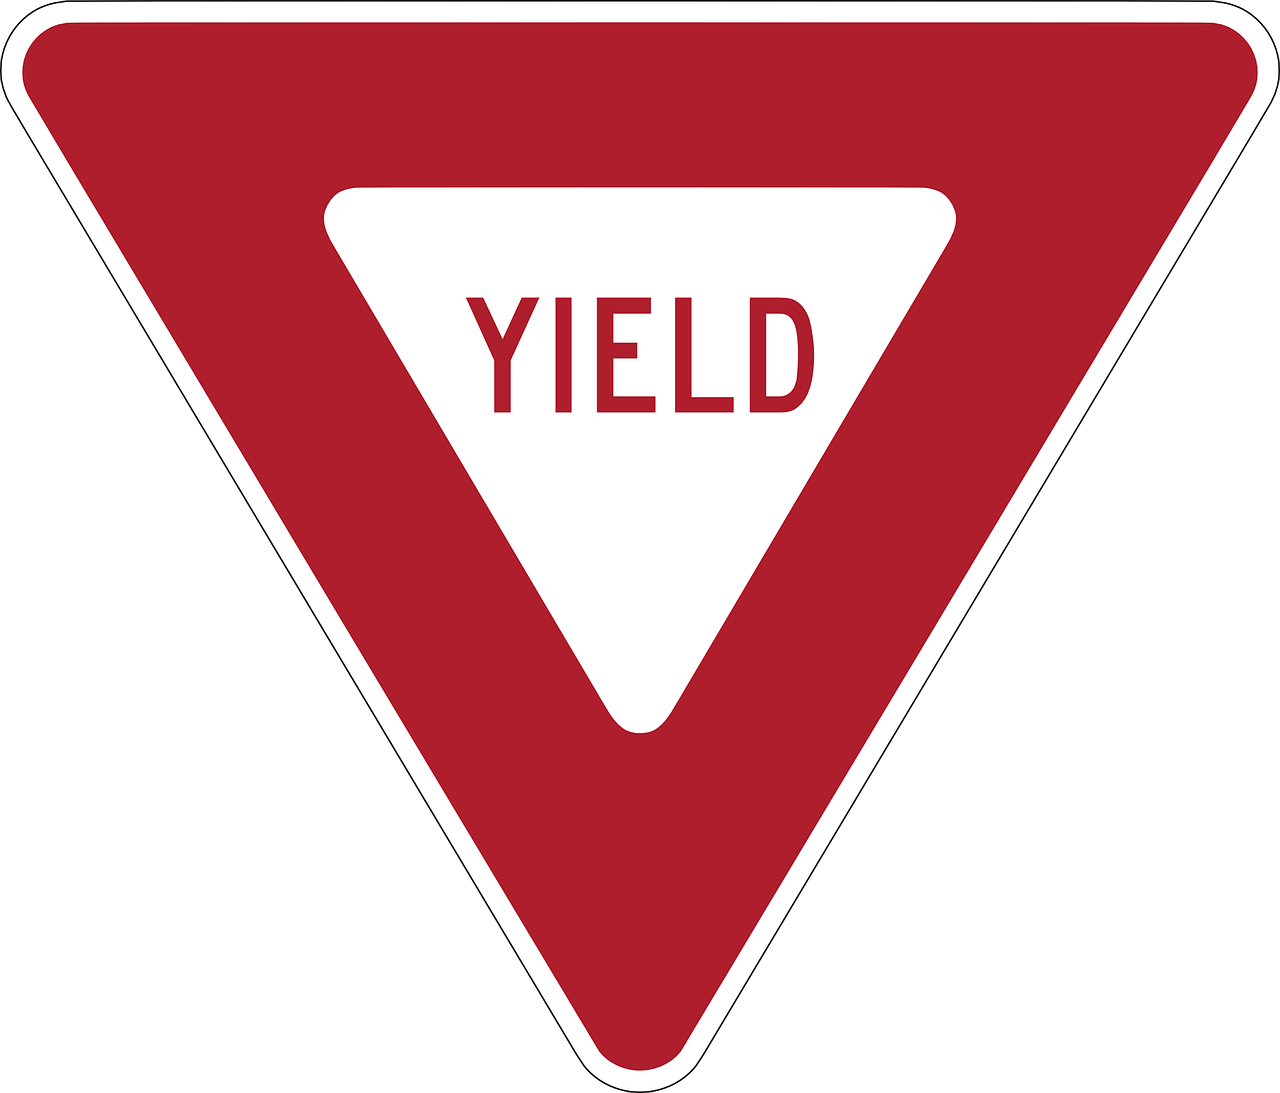 yield give way road sign free photo